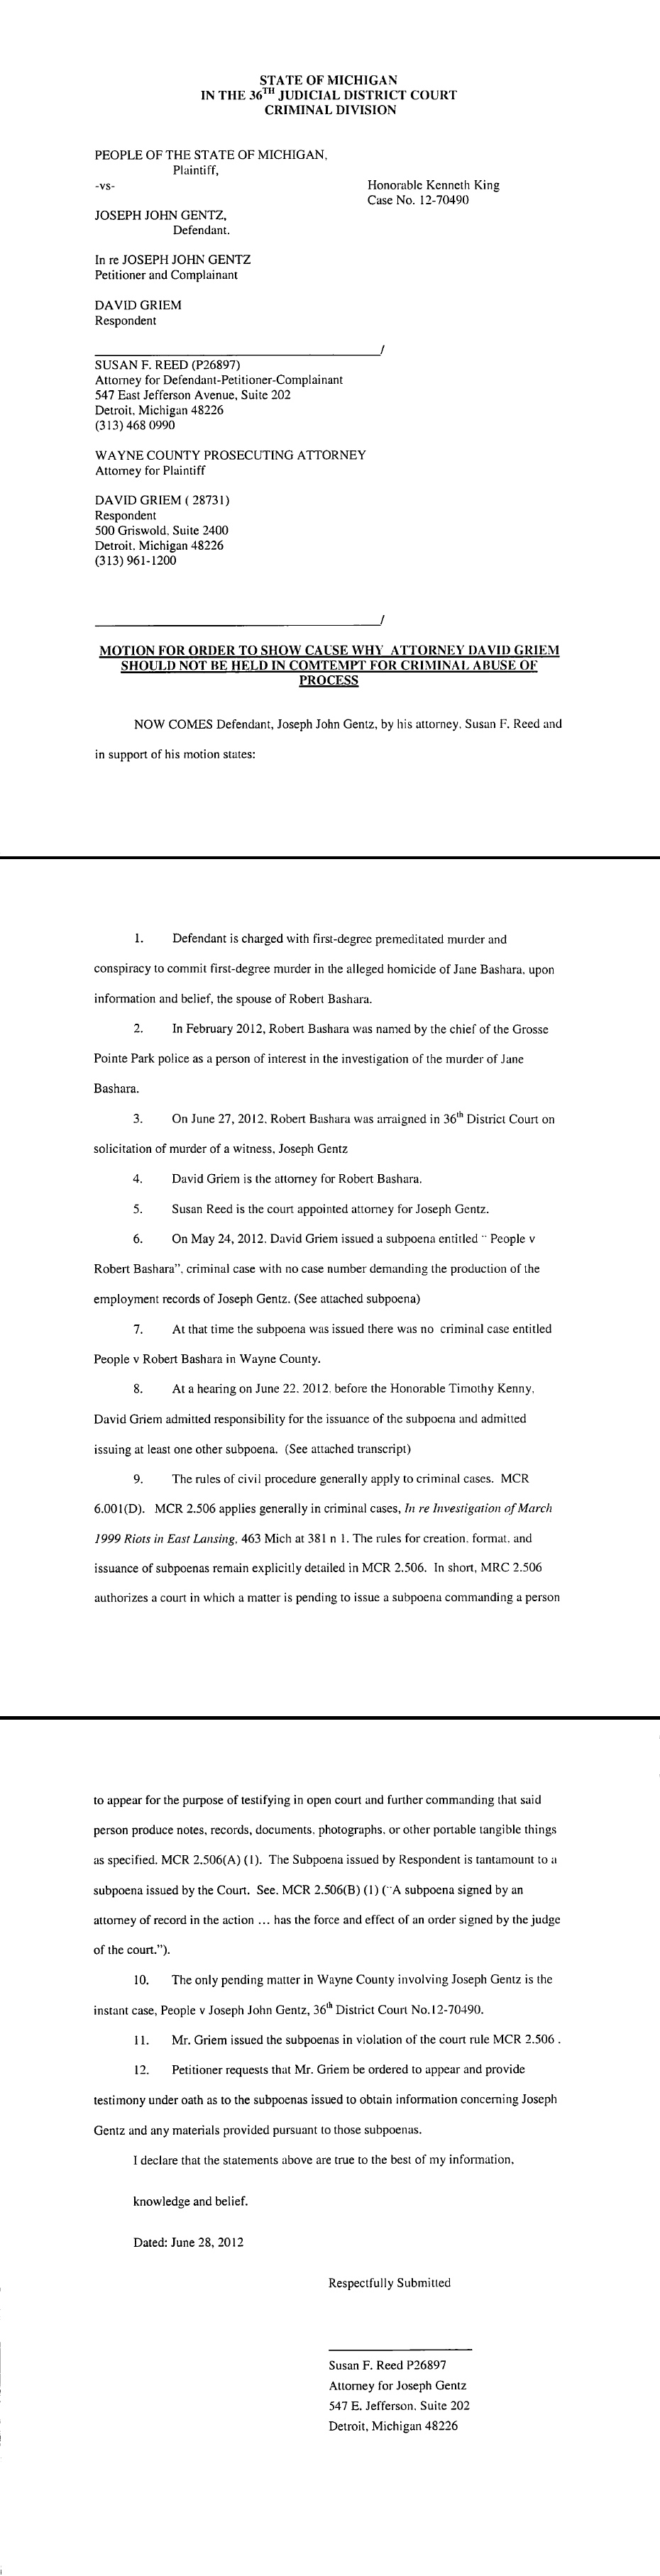 Jane Bashara murdered by Joe Gentz, alleges her husband was involved/Bashara arrested & arraigned on chges of solicitation to murder/Gentz pleads GUILTY to 2nd degree murder/Bashara sentenced to life: 'May Jane now truly rest in peace' - Page 2 A8af1922245f